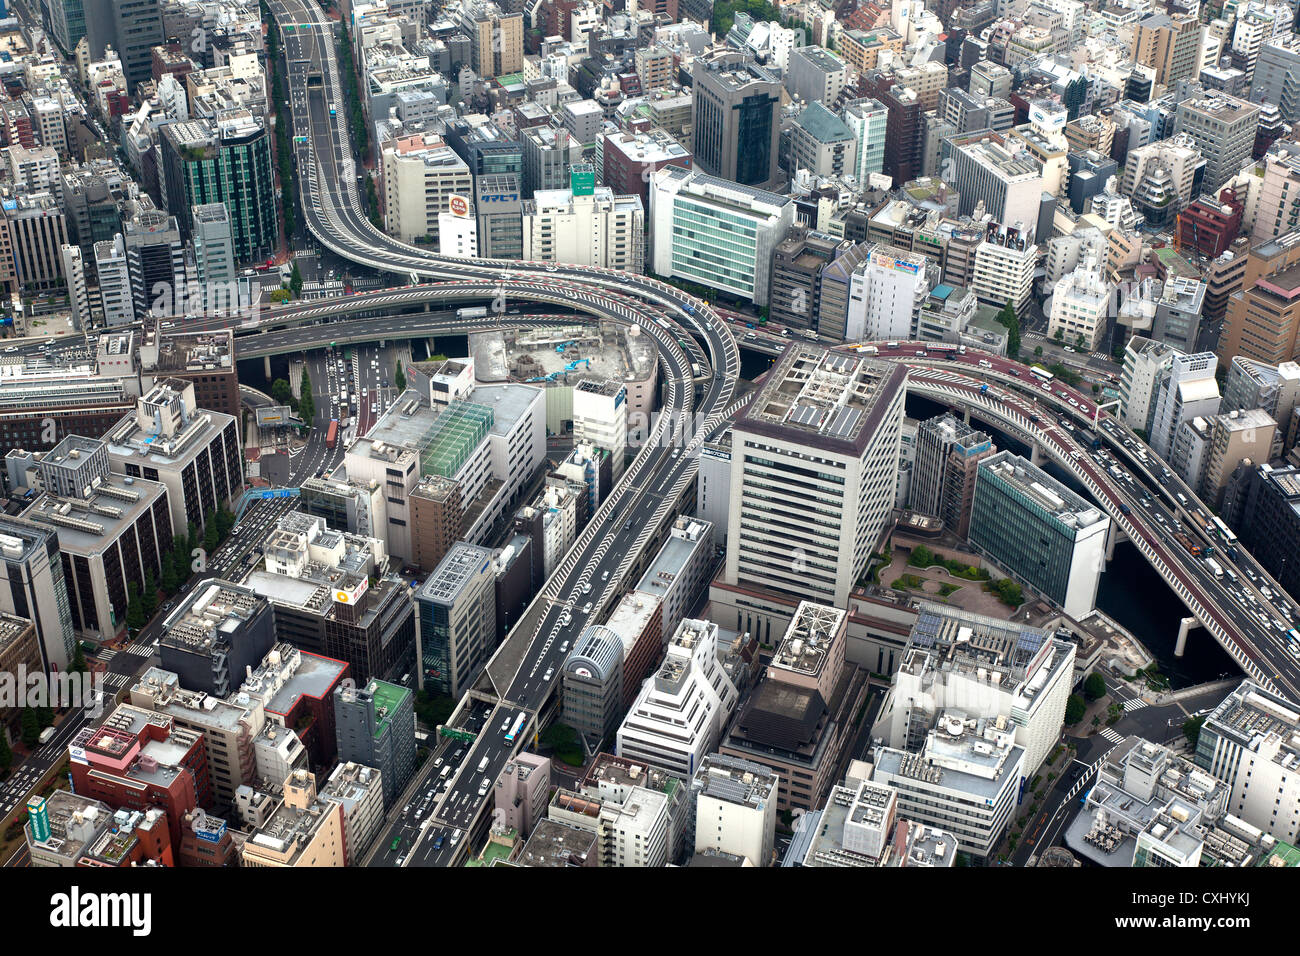 Aerial shot of crowded road network snaking through central Tokyo, Japan - Stock Image